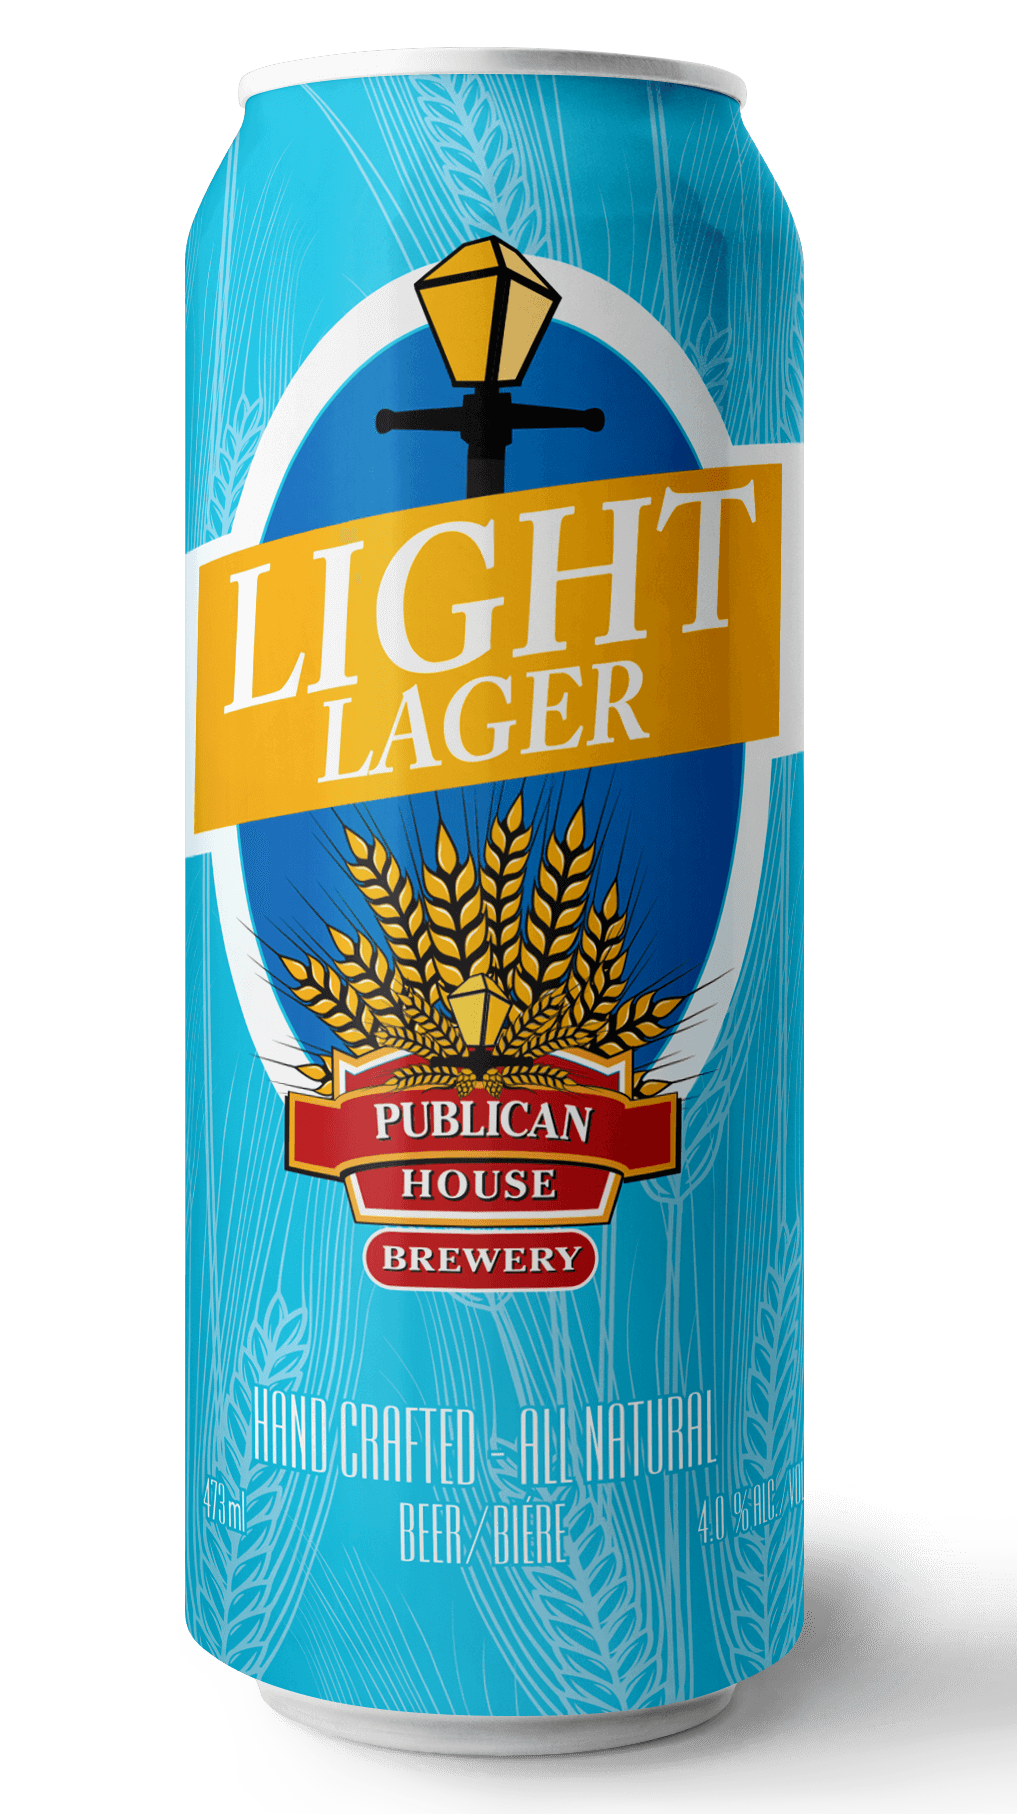 photo of Light Lager beer